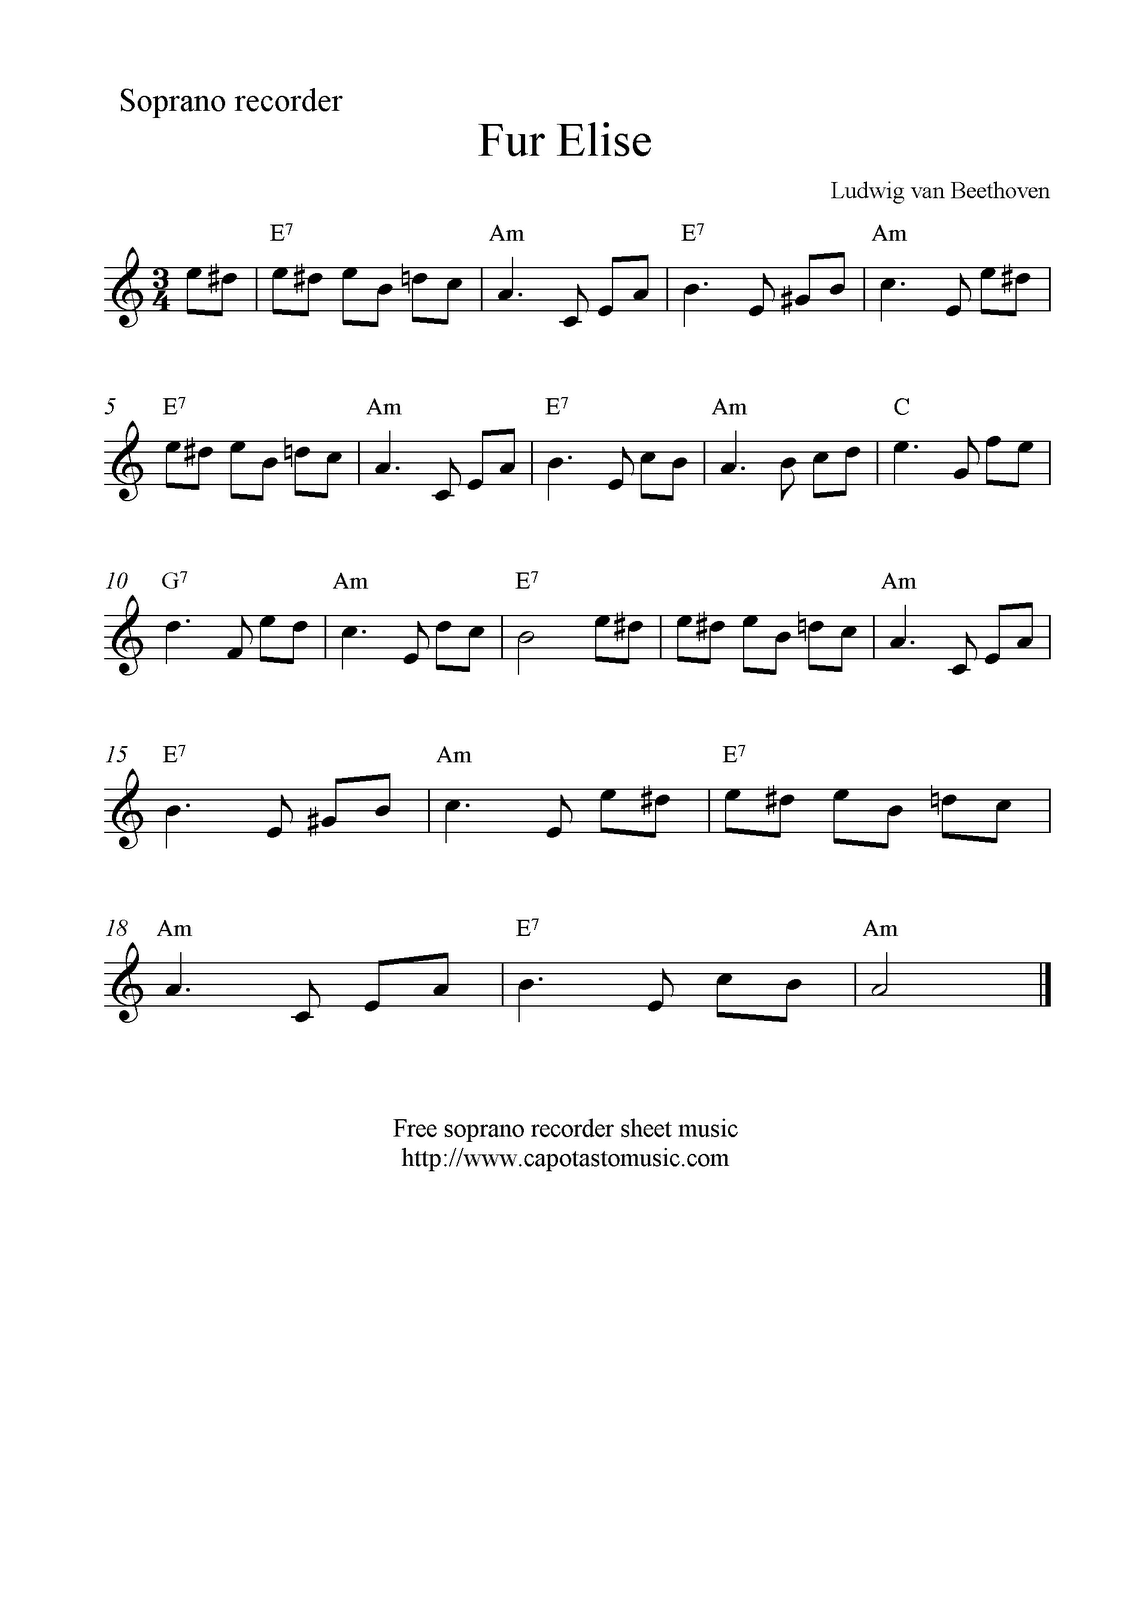 how to play fur elise on recorder